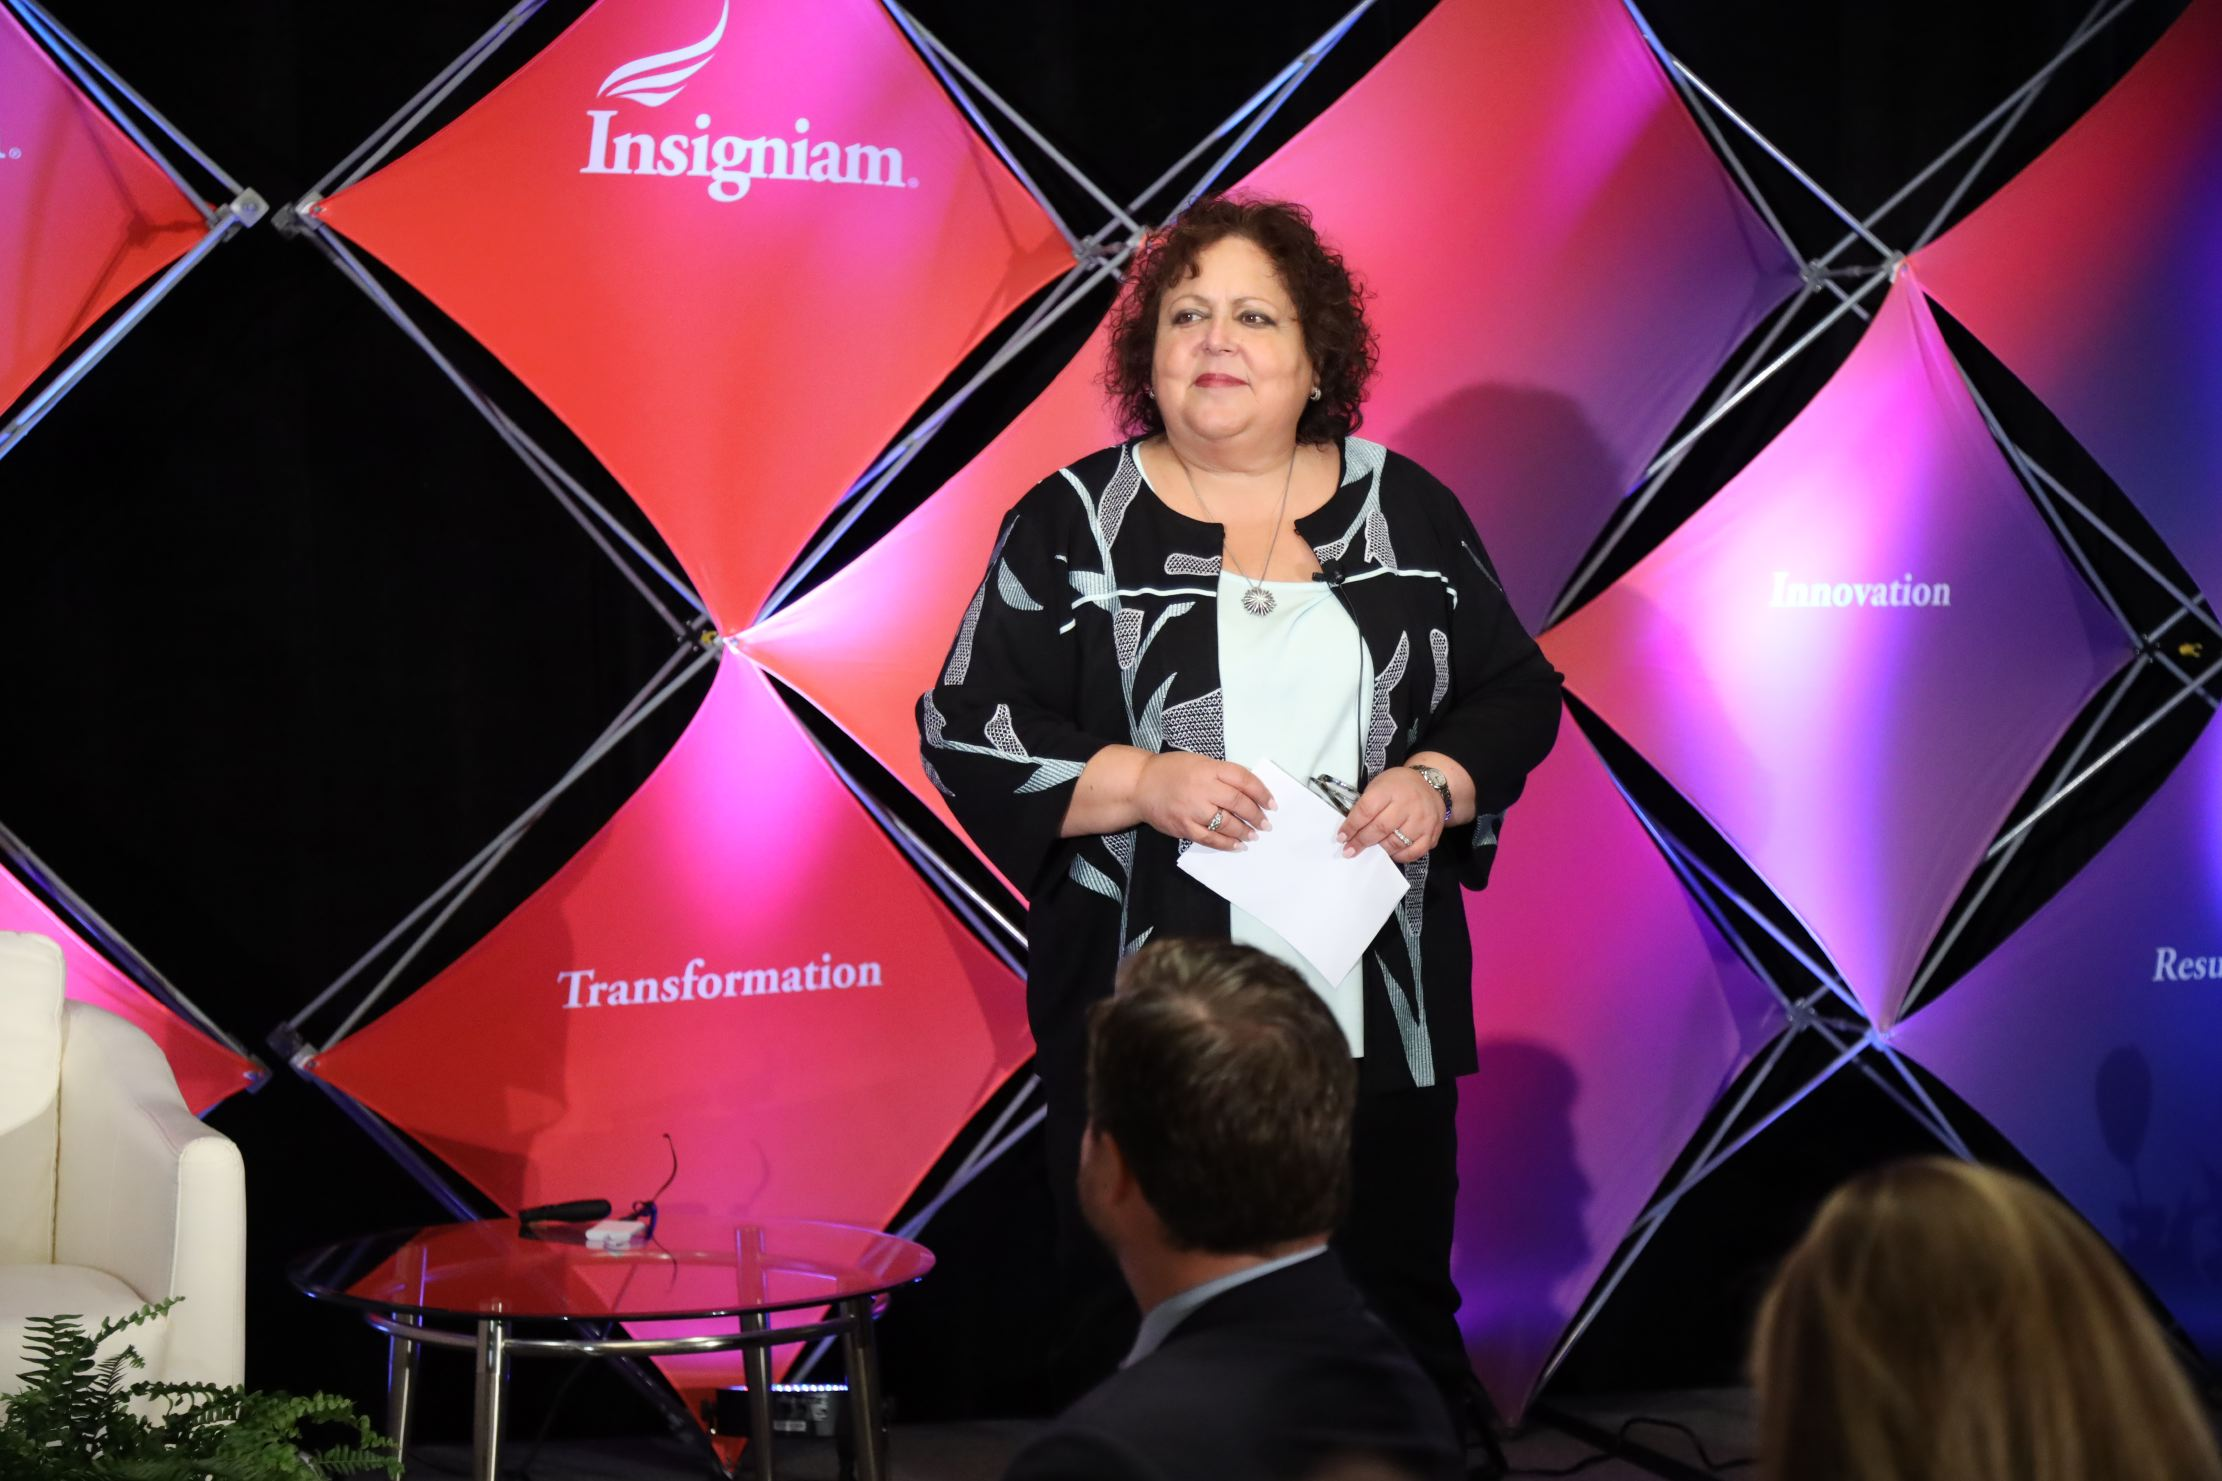 Insigniam Co-Founder Shideh Sedgh Bina named to PharmaVOICE 100 Most Inspiring People